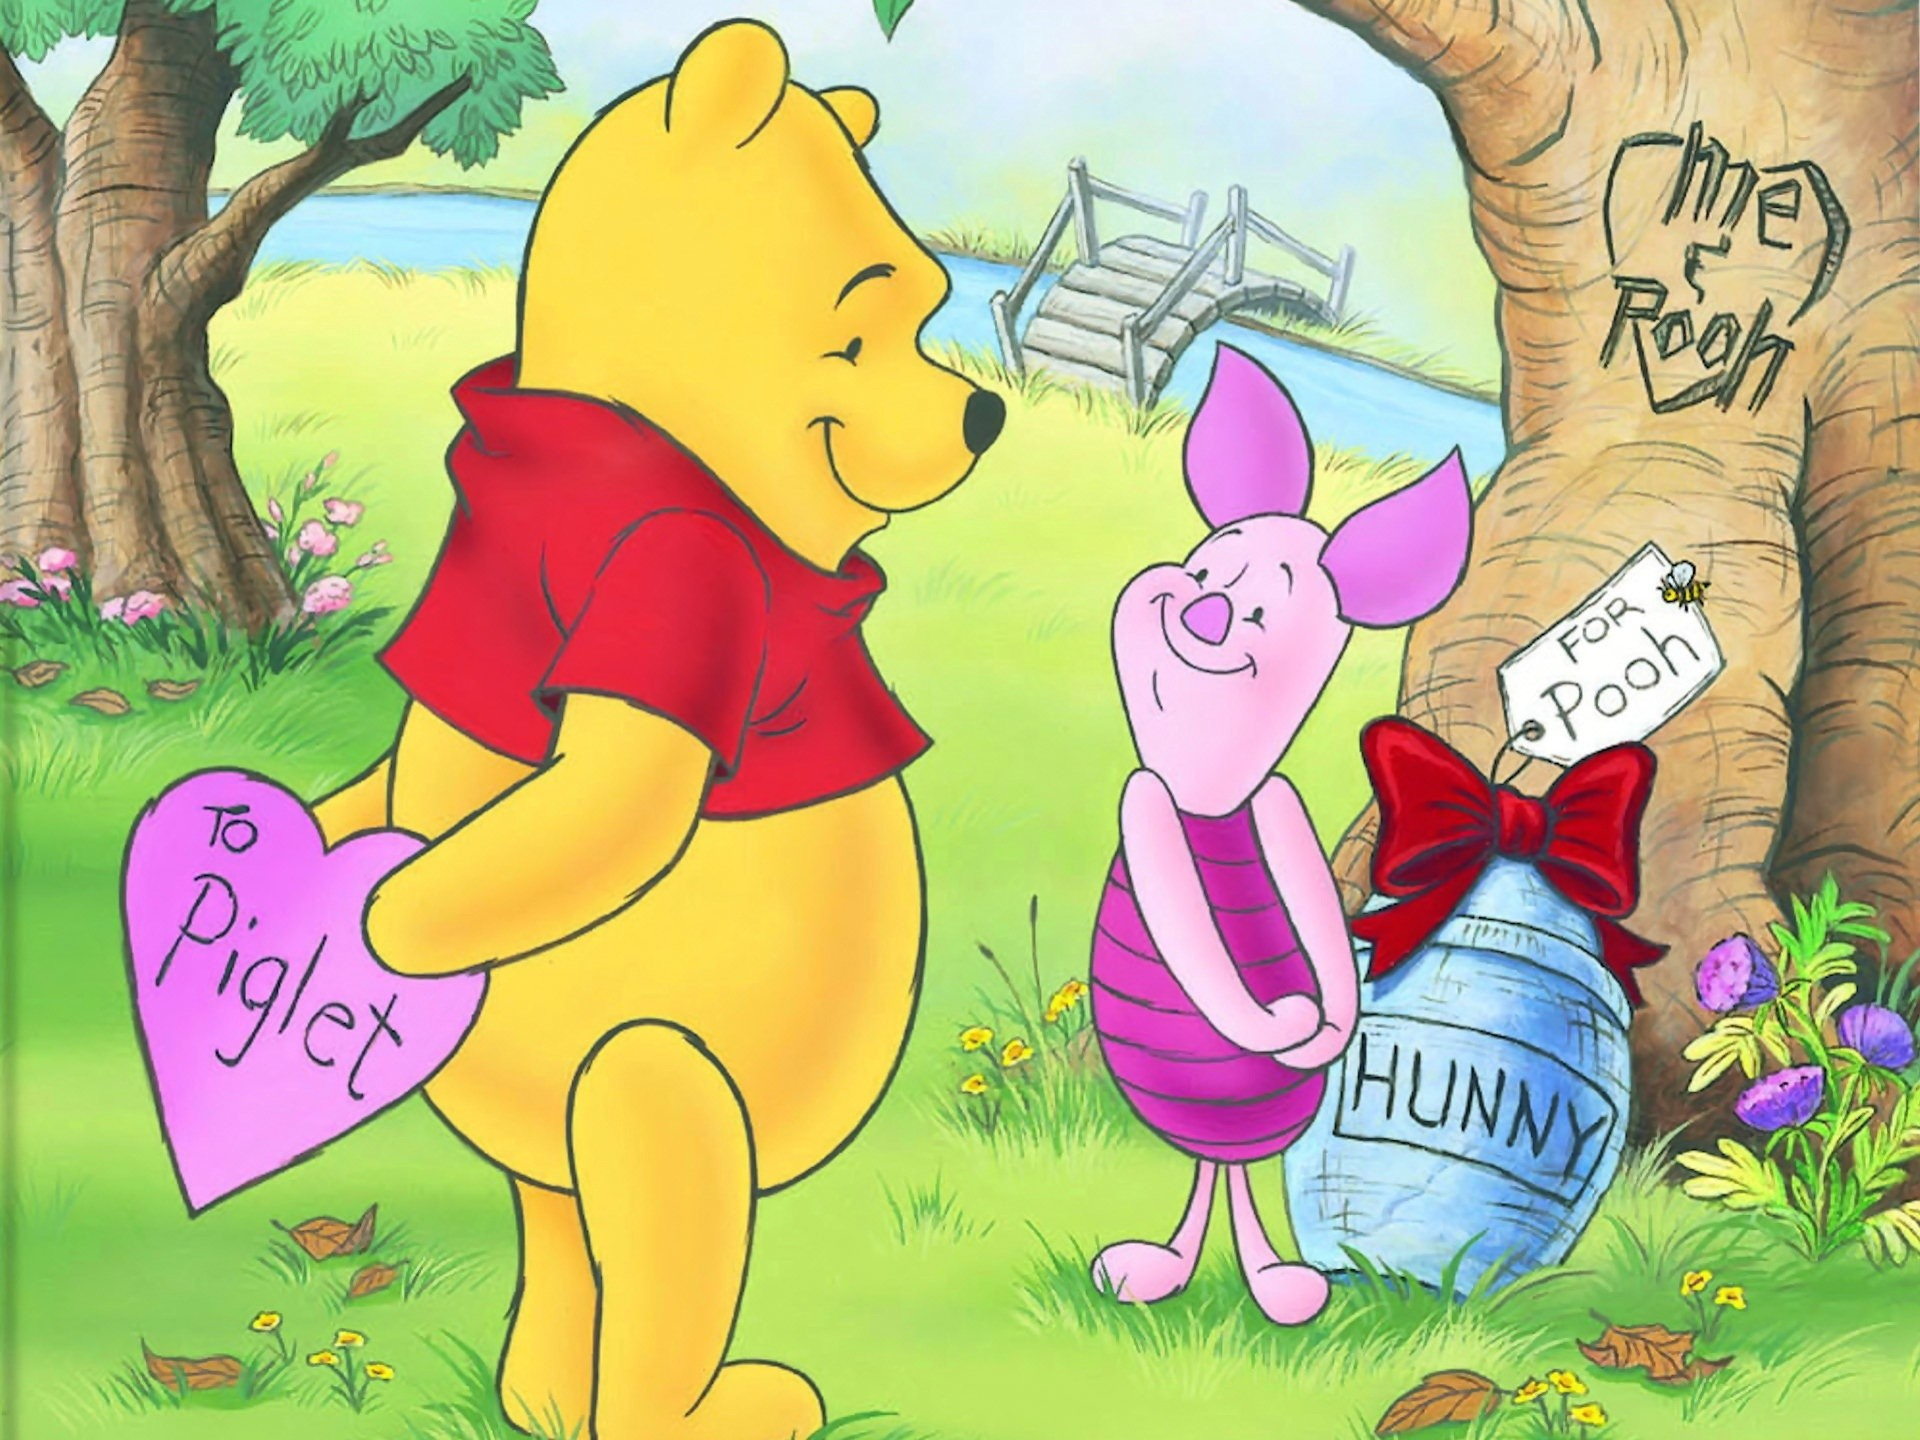 1920x1440 Disney Valentines Day Piglet and Pooh Wallpaper - A beautiful wallpaper for Valentine's  Day with Piglet and Pooh, among the most loved anima.